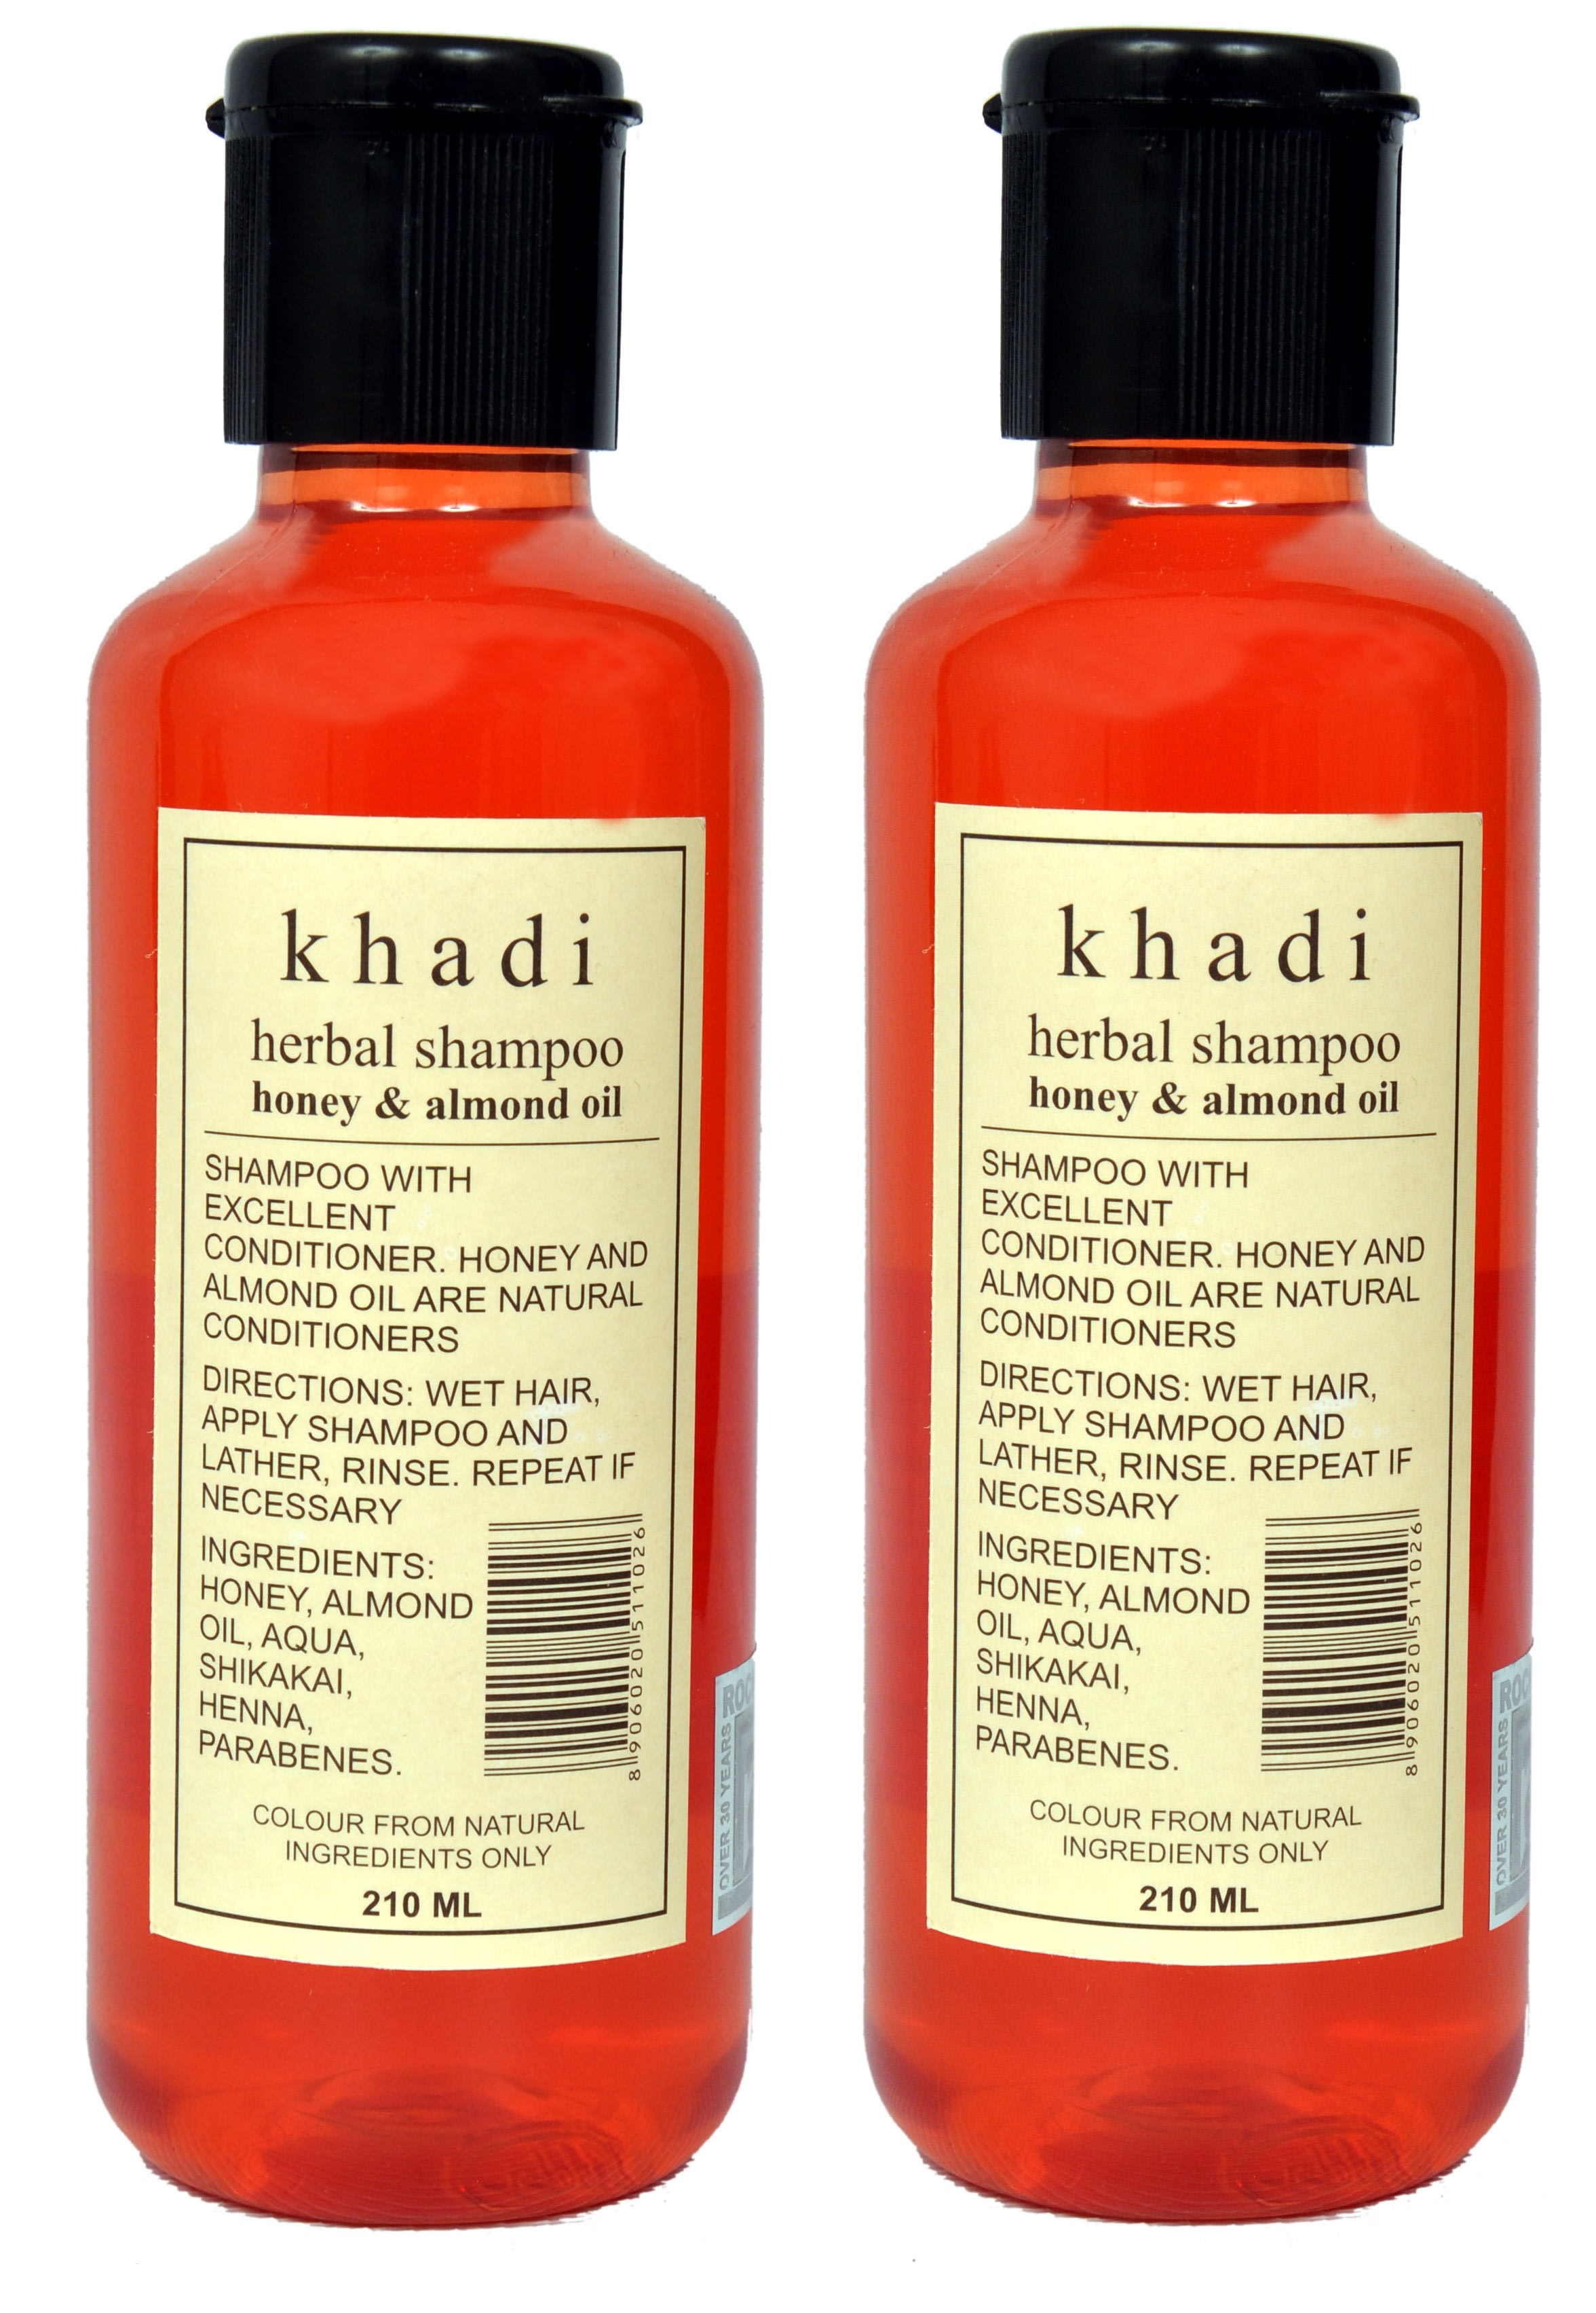 Khadi Herbal Shampoo with Honey & Almond Oil Pack of 2